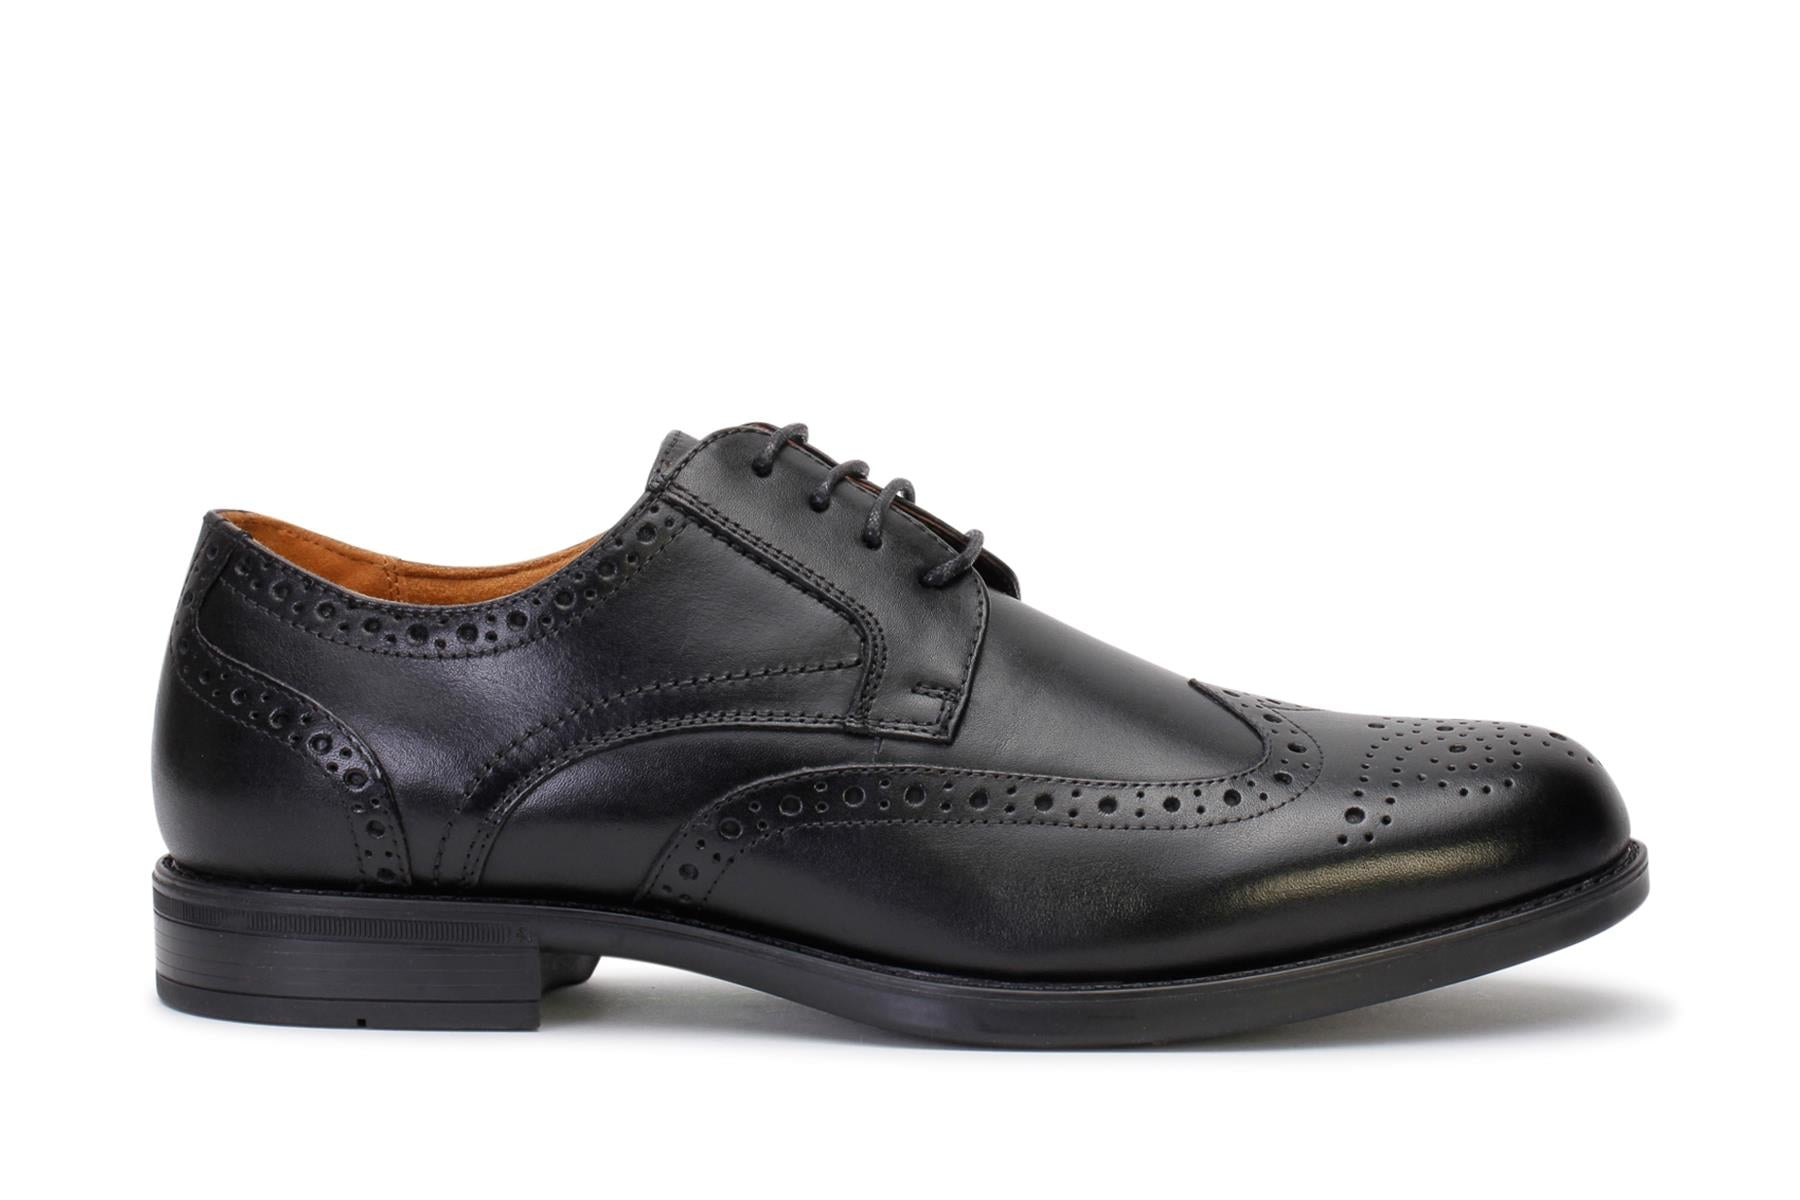 florsheim-mens-dress-shoes-midtown-wingtip-oxford-black-leather-main